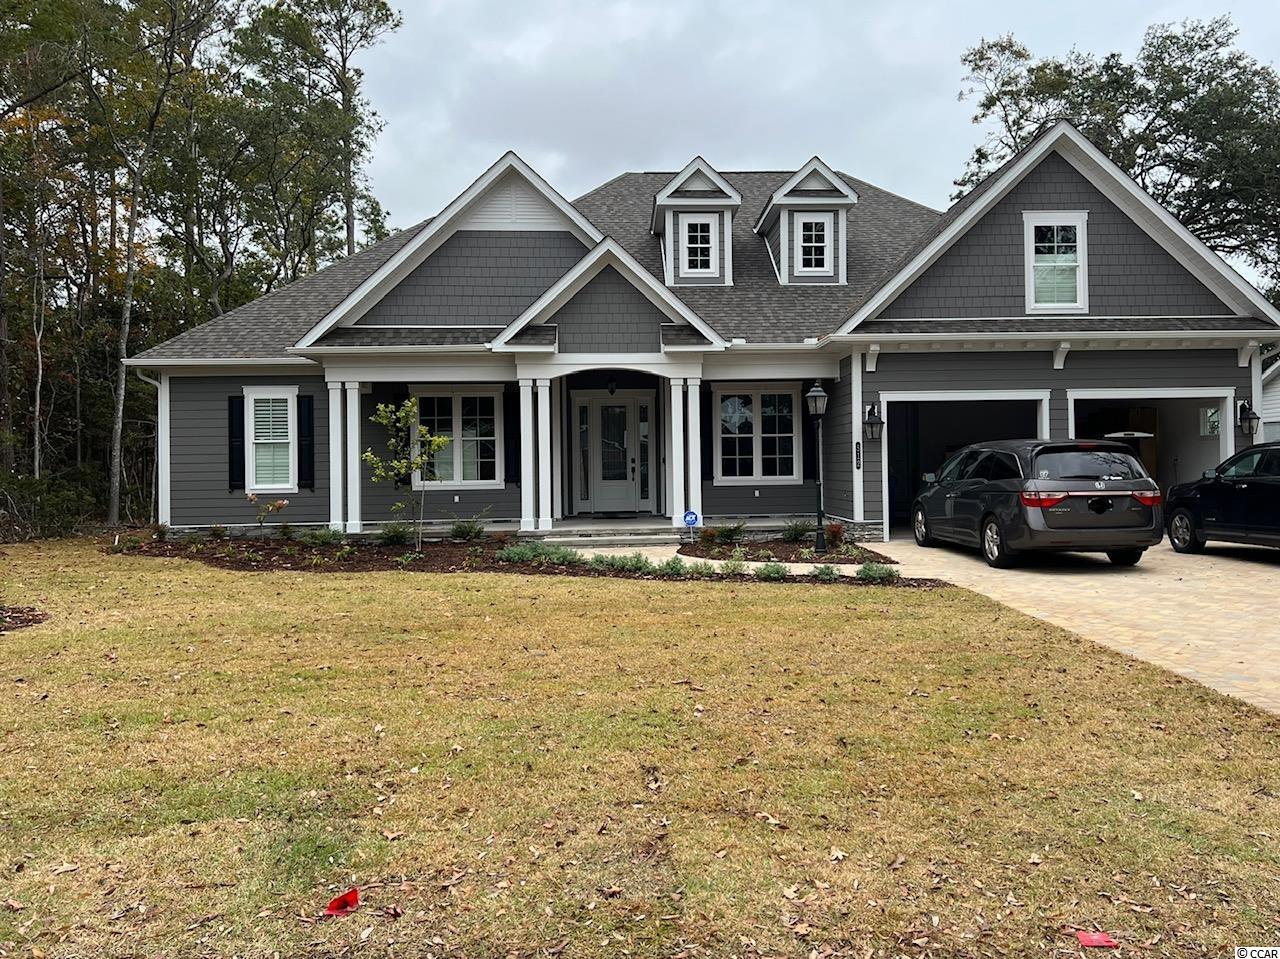 Tall ceilings, 8' solid core doors, oversized kitchen with rear covered porch and pool area. Super nice new custom build in Surfside. Pictures will be updated as build progresses.